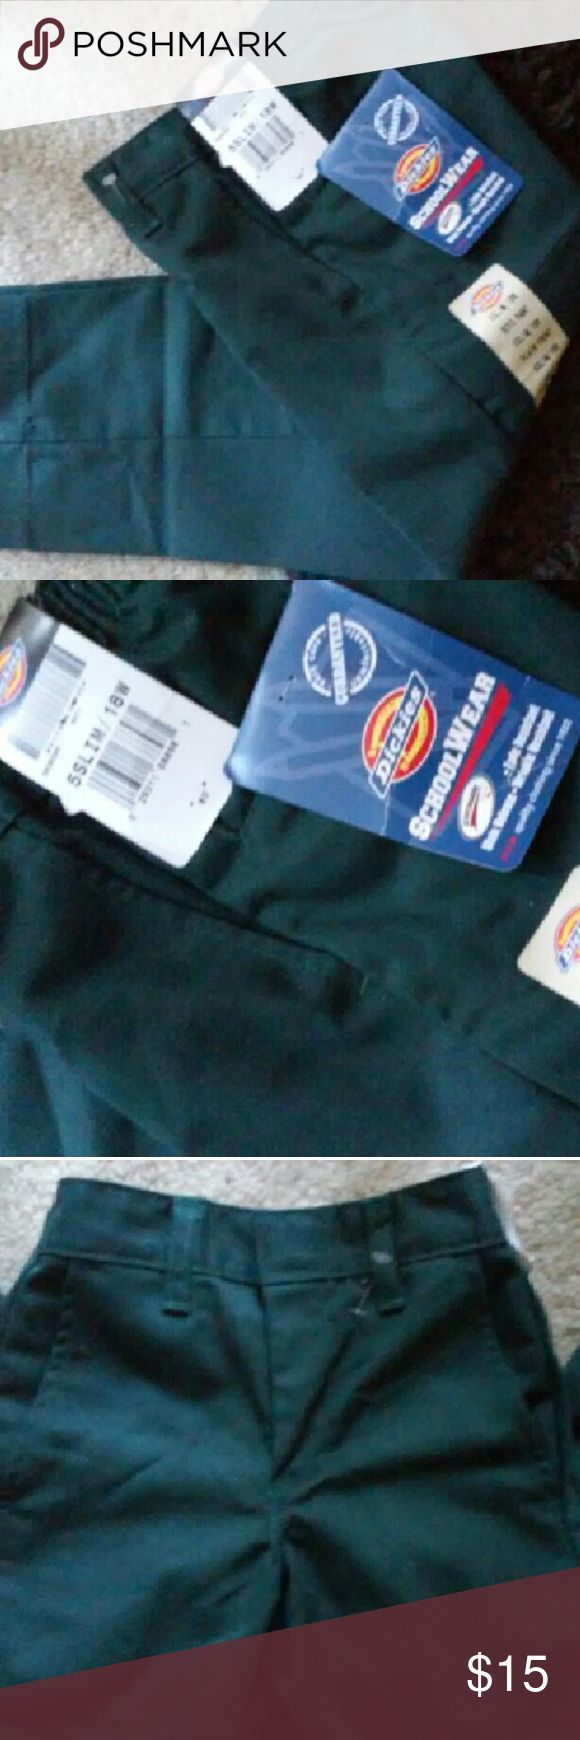 """Dickies Forest Green Pants, Size 5 Slim, 18"""" Waist Pants in forest green color, size 5 slim, 18"""" waist and 24"""" long. New with tags. Dickies Bottoms Casual"""